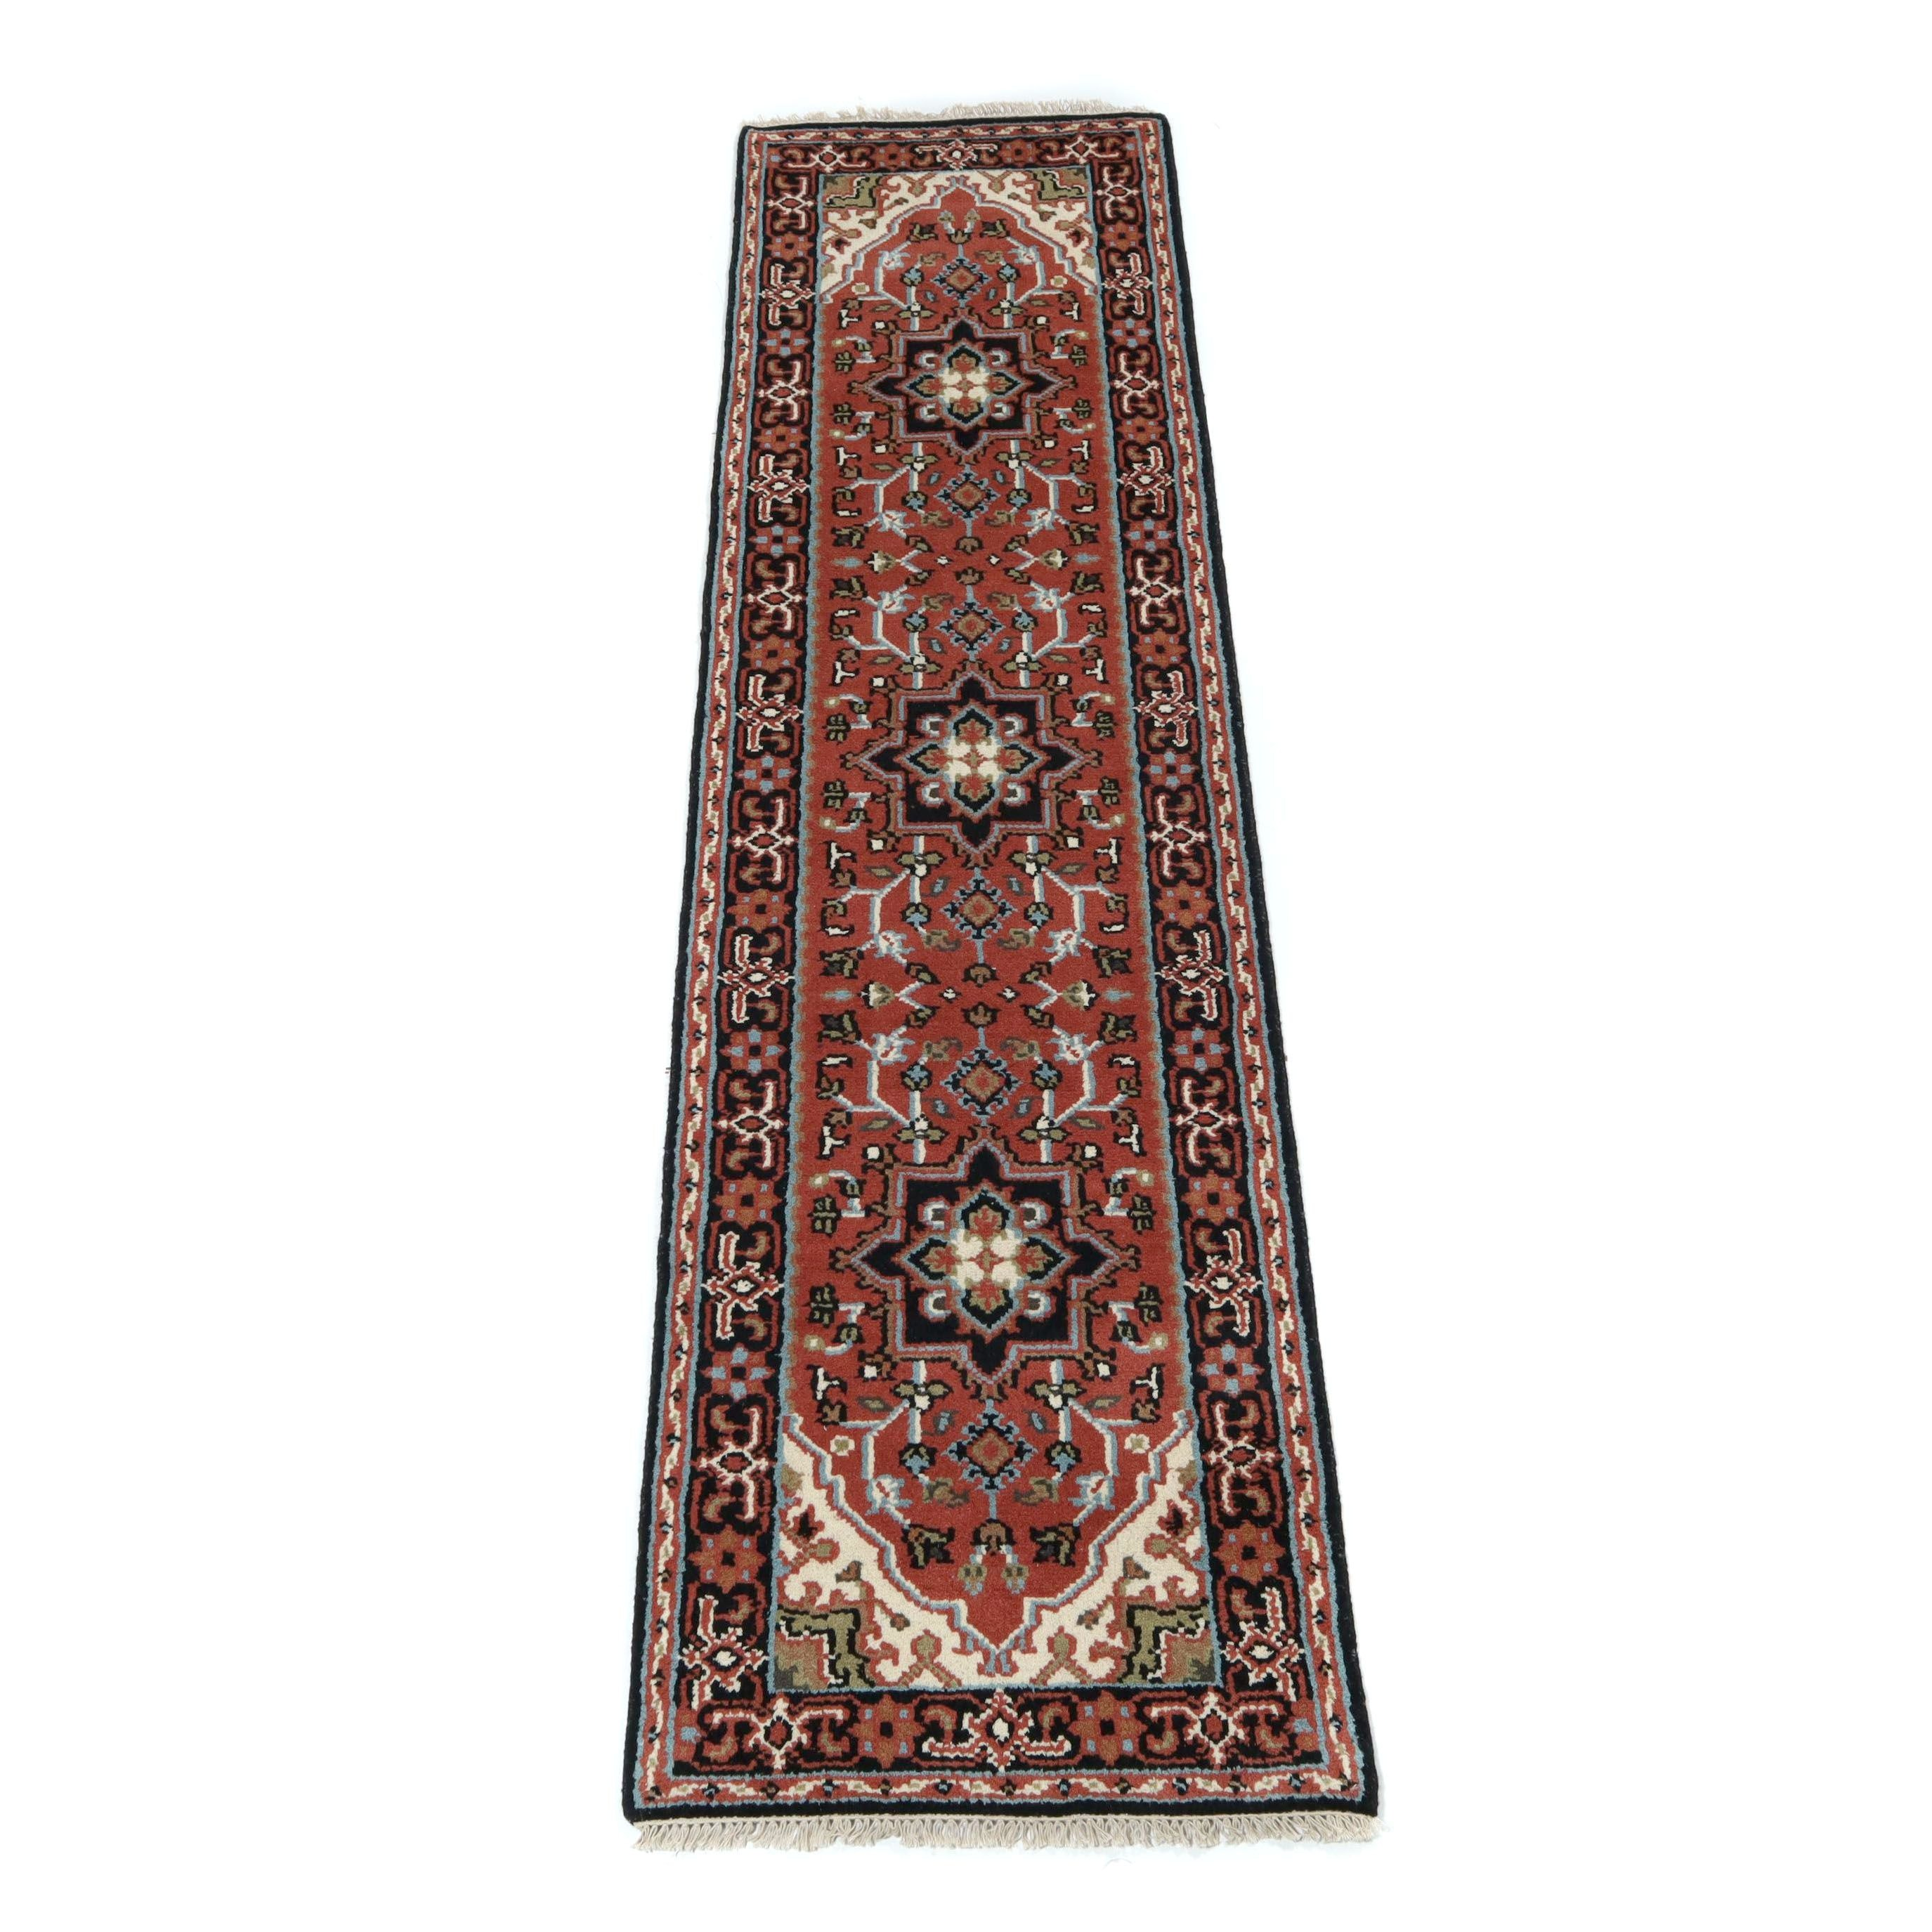 2.6' x 9.11' Hand-Knotted Indo-Persian Heriz Carpet Runner